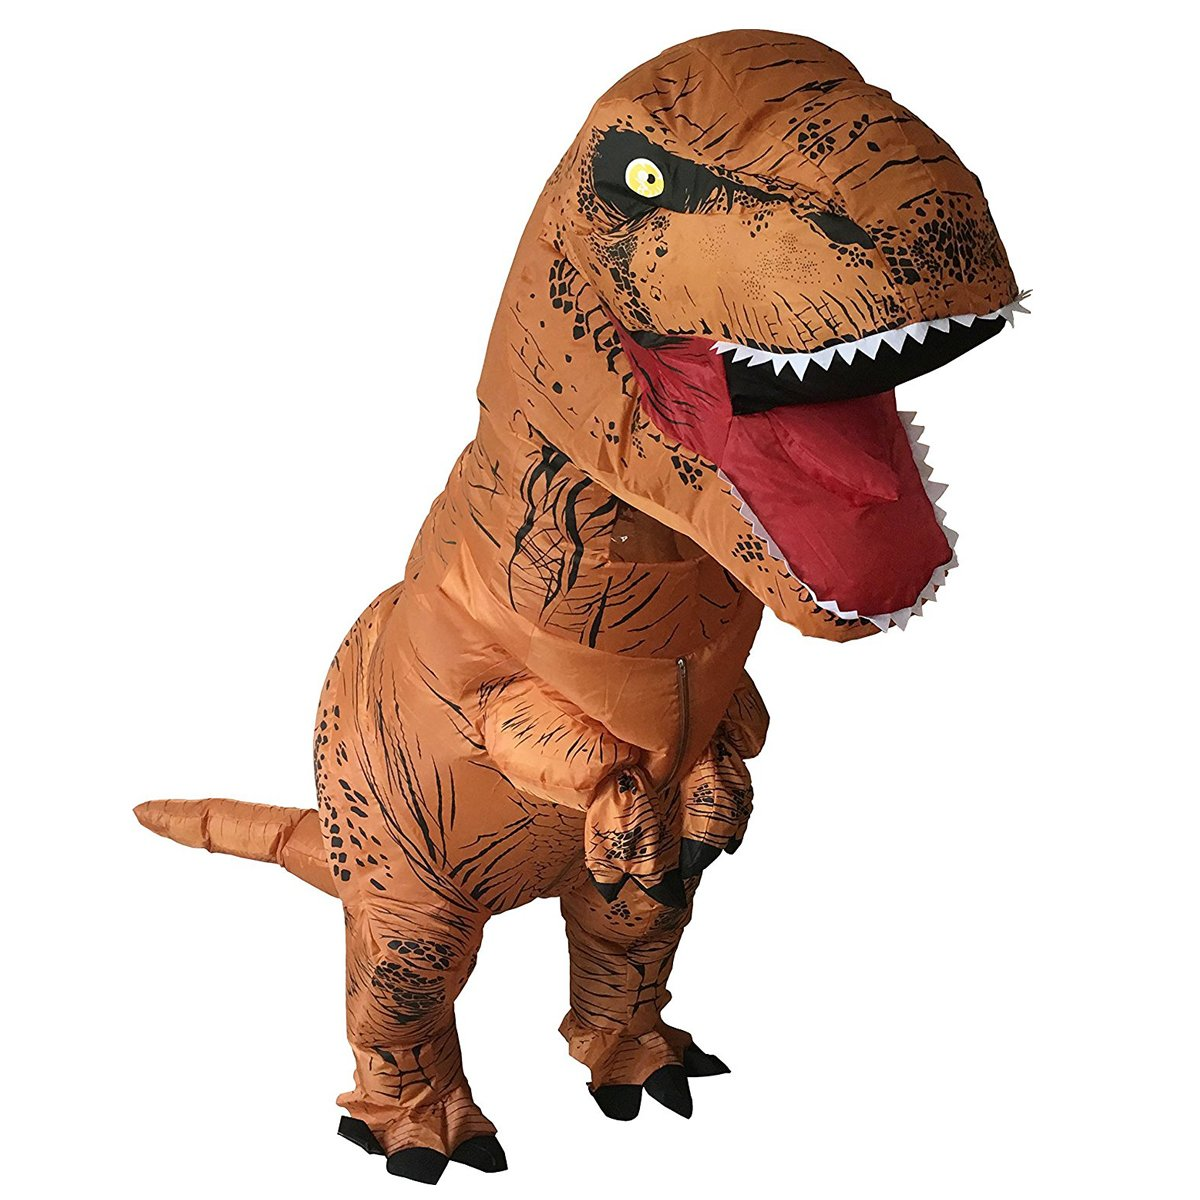 Holybo Adult Inflatable T-rex Dinosaur Fantasy Costume Halloween Suit Cosplay